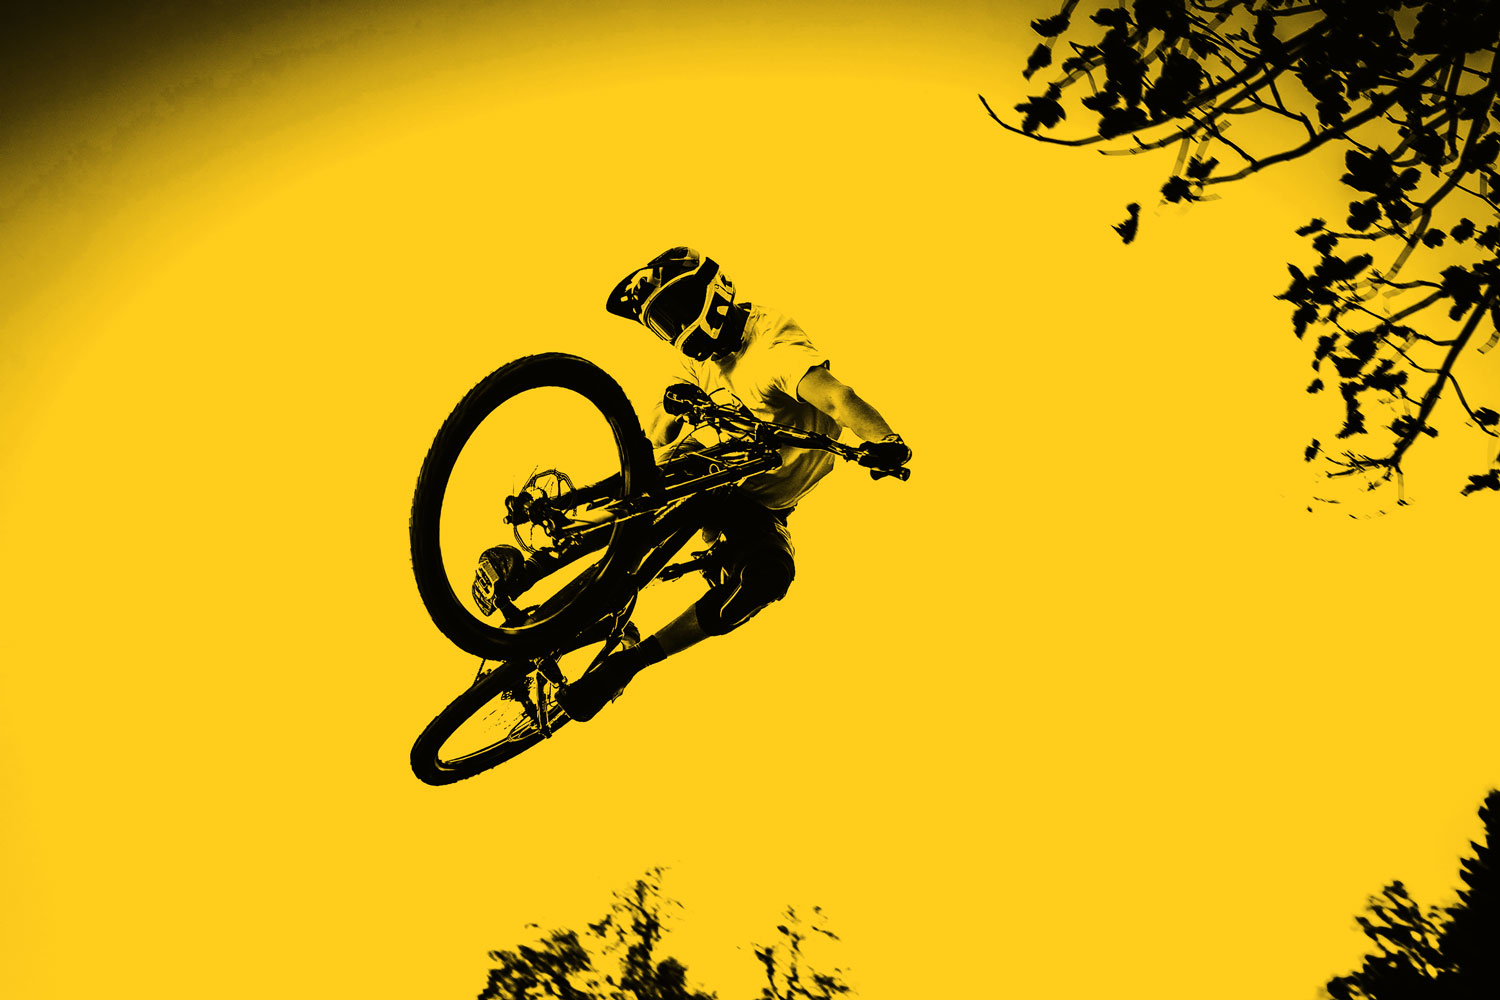 Freestyle_ch_Mountainbike_Jump_black_and_yellow.jpg